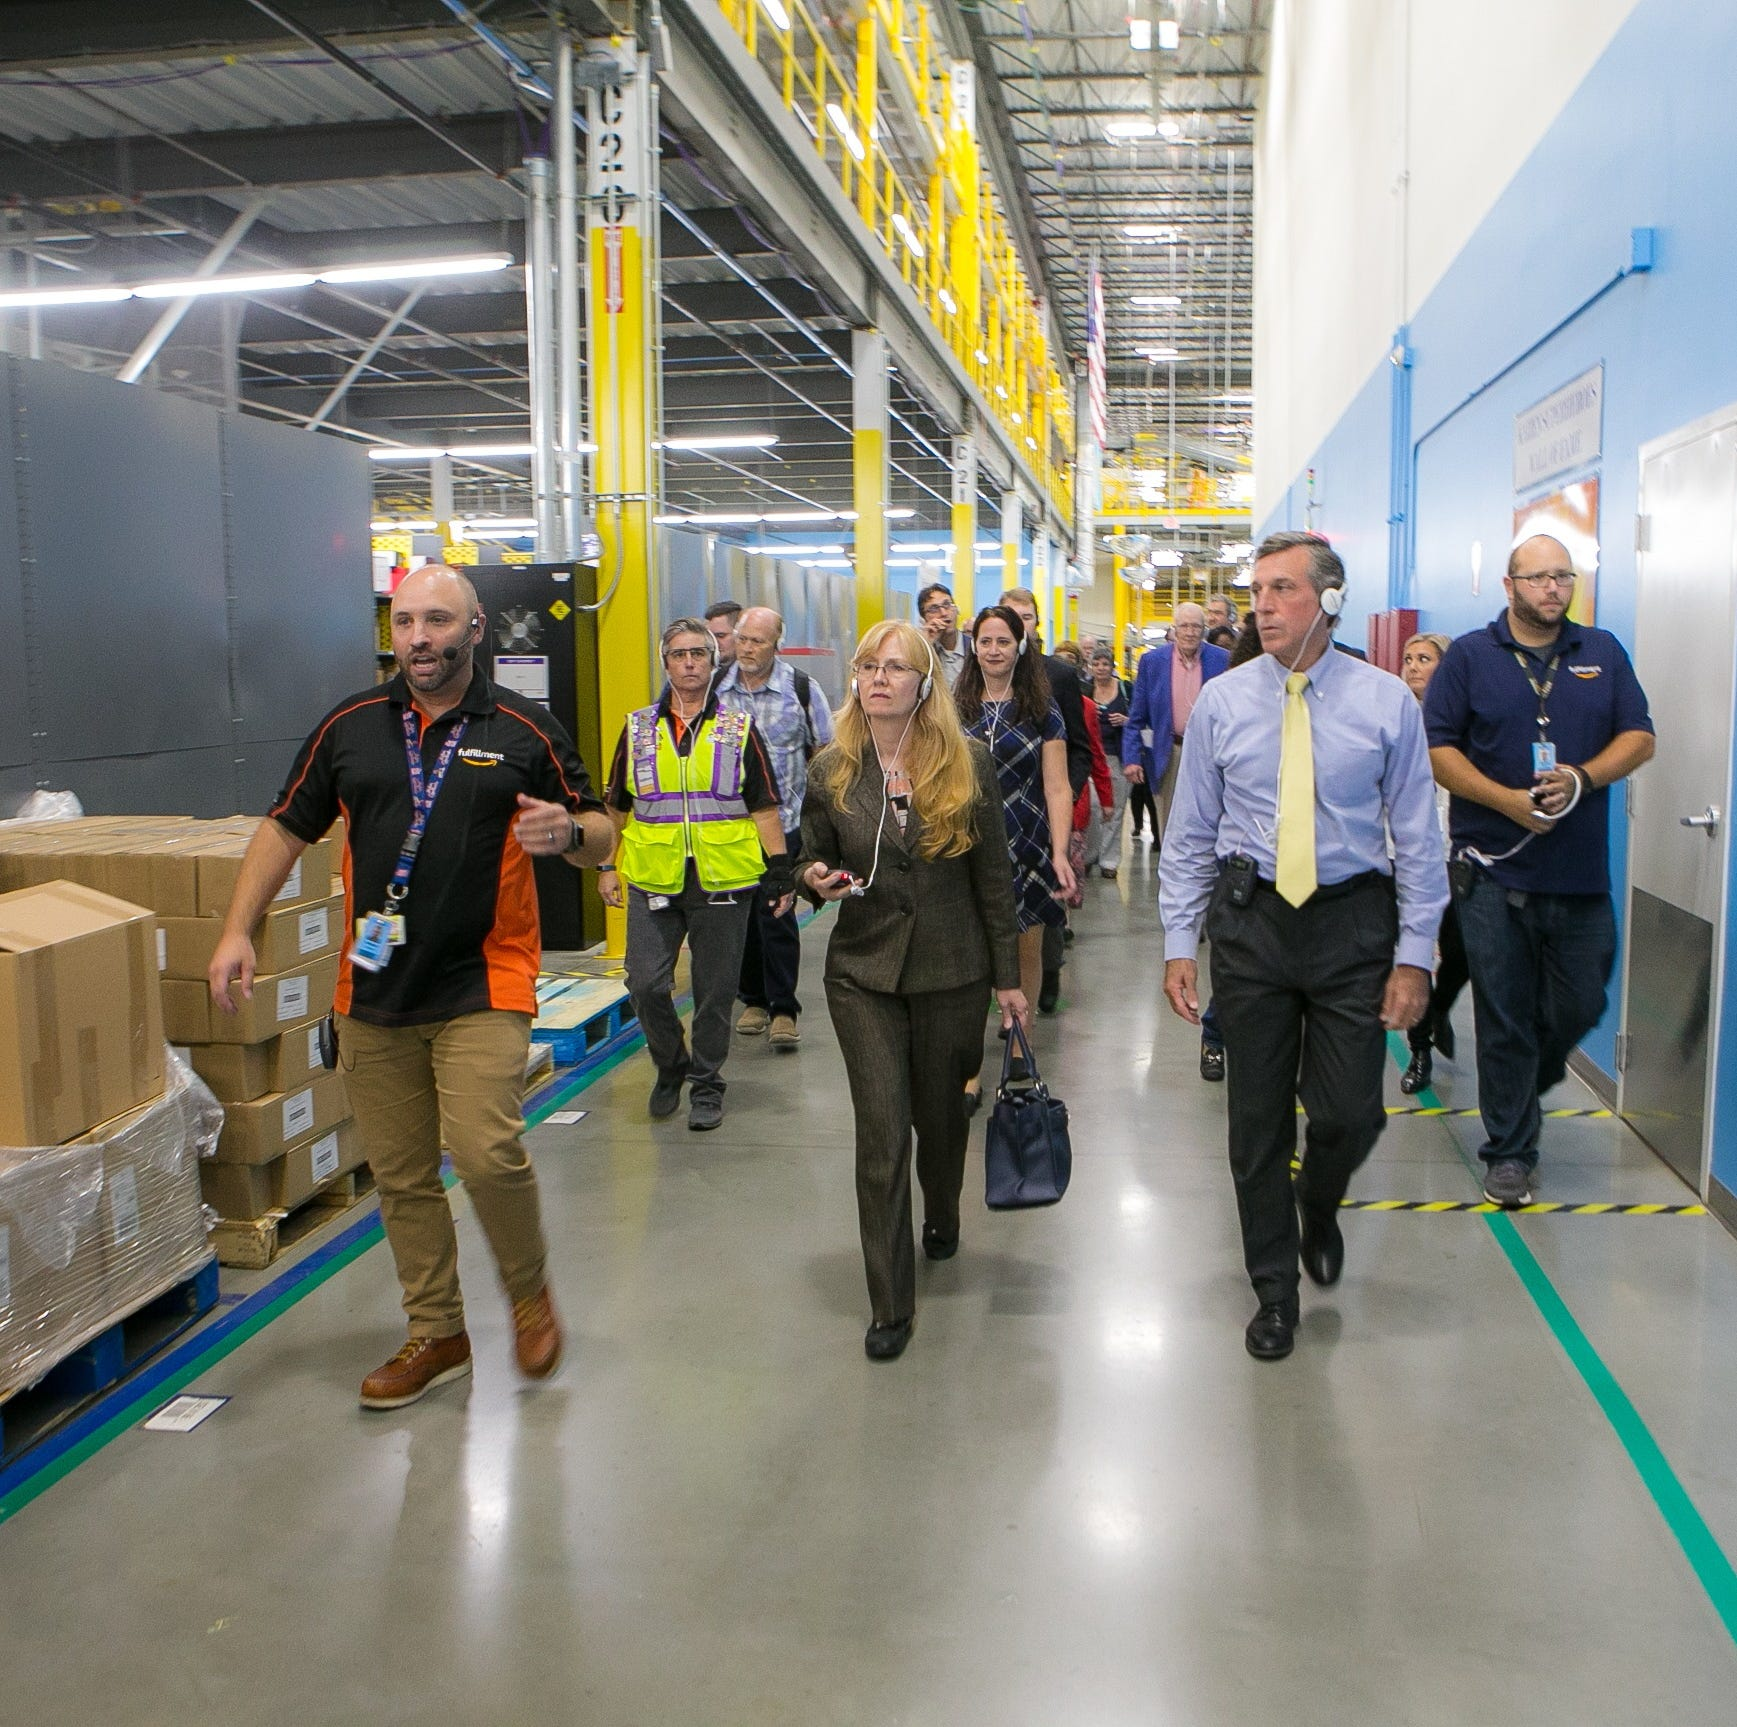 Amazon's Made-On-Demand book facility highlights tour of fulfillment center